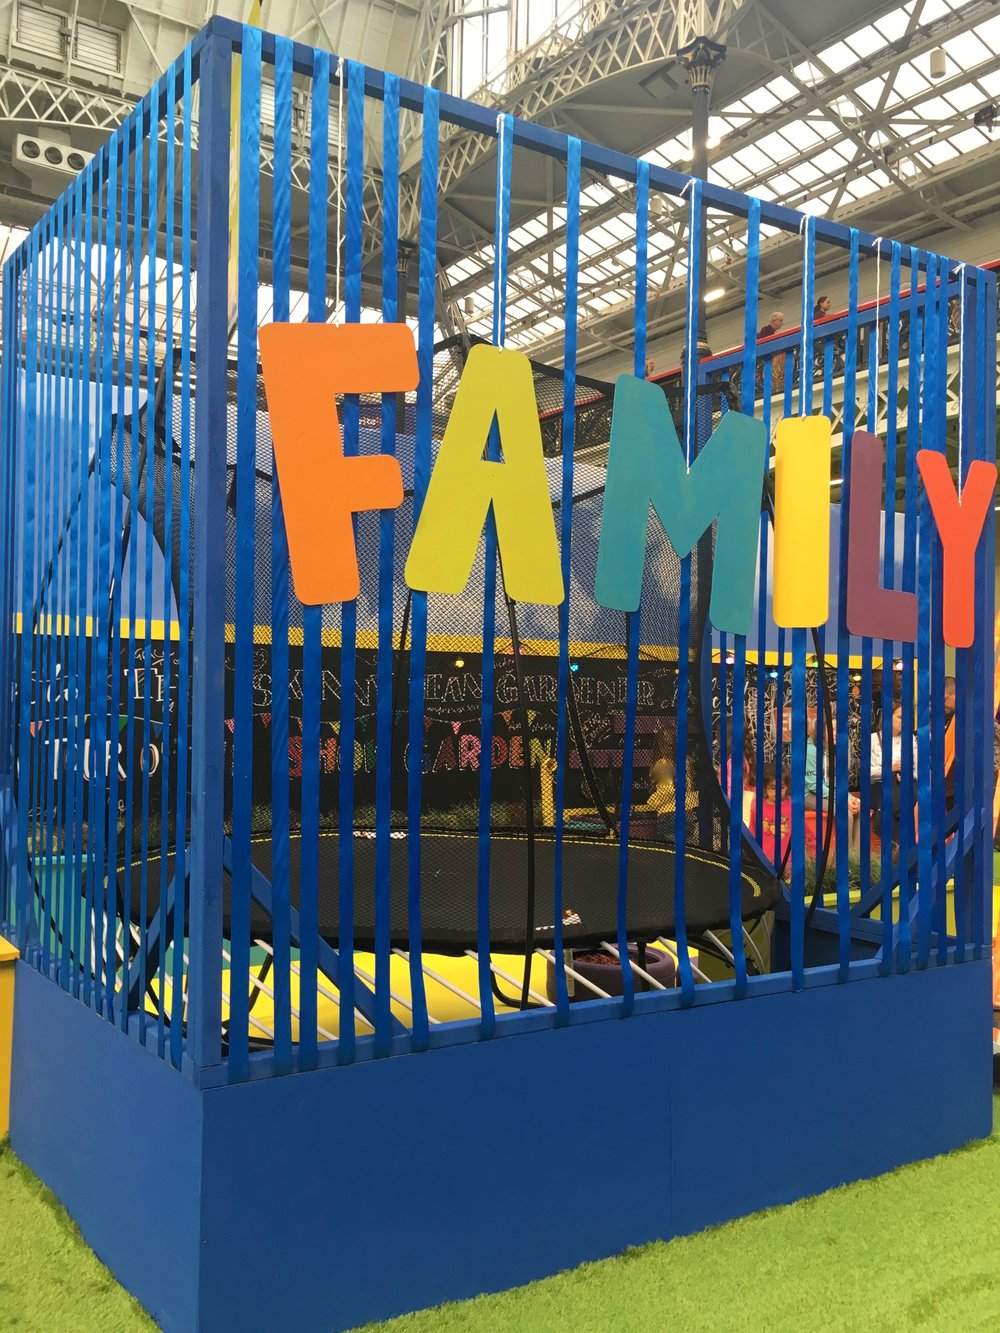 In the family fun garden room set at the ideal home show